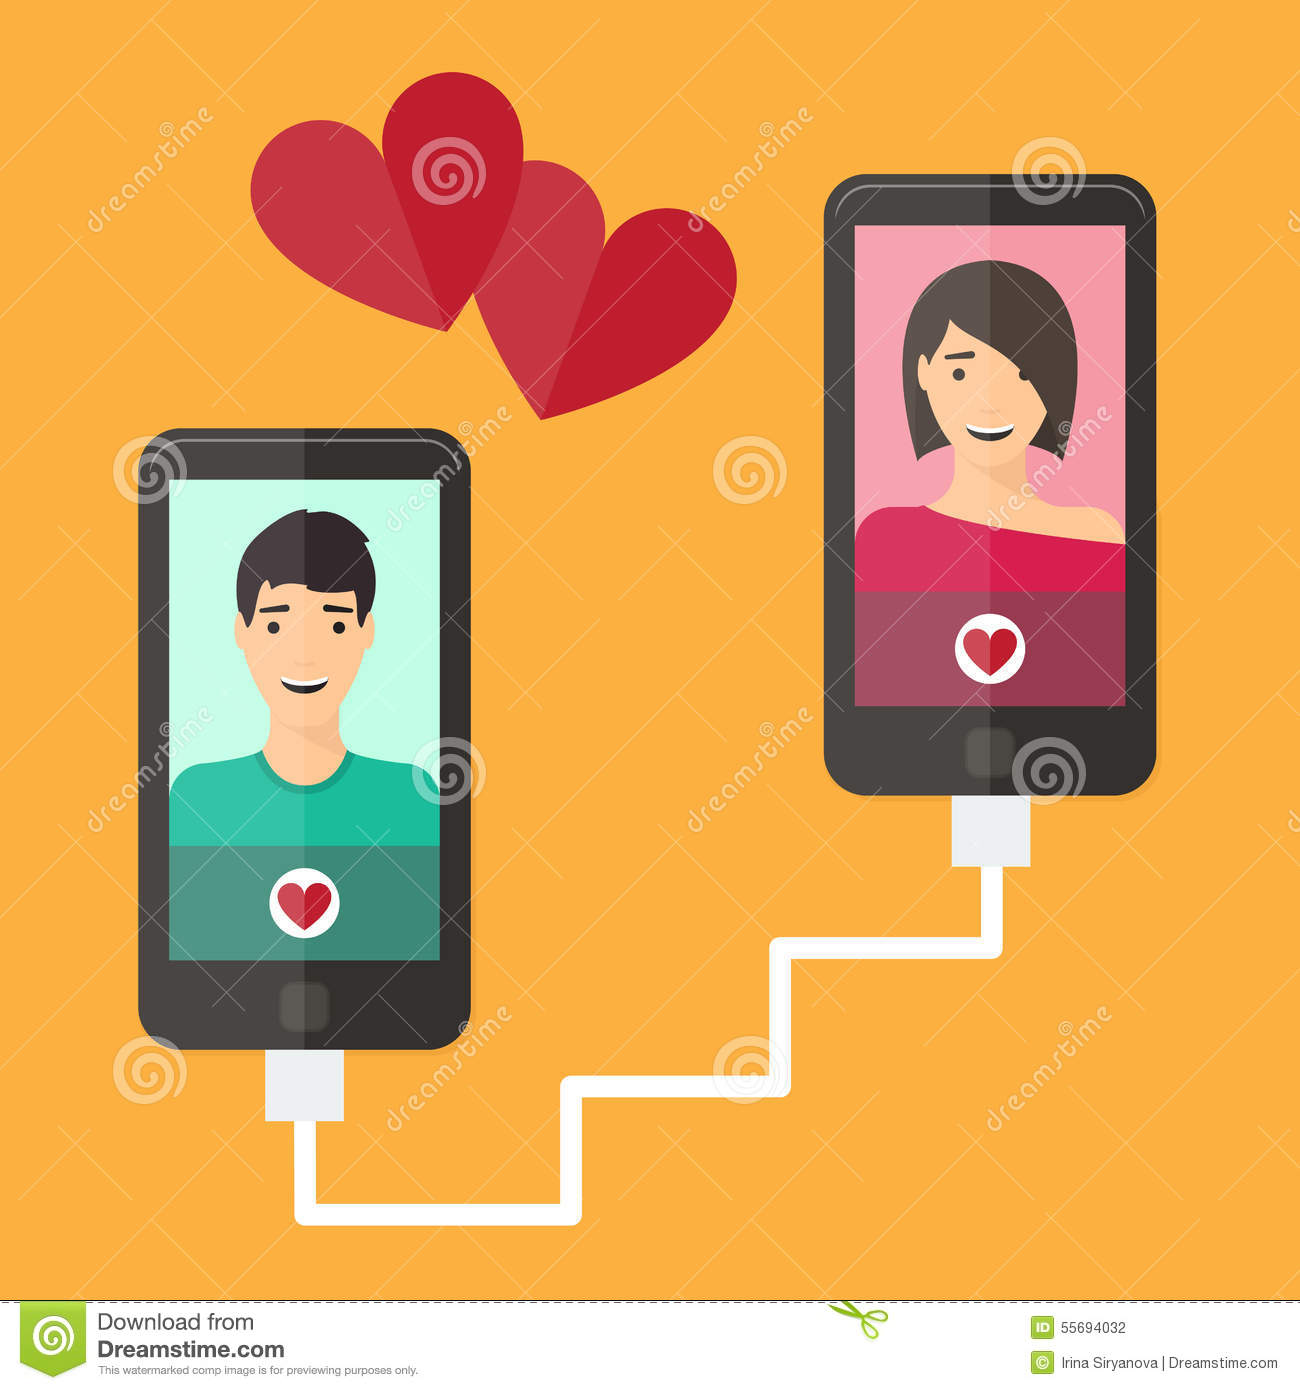 Mobile online dating service